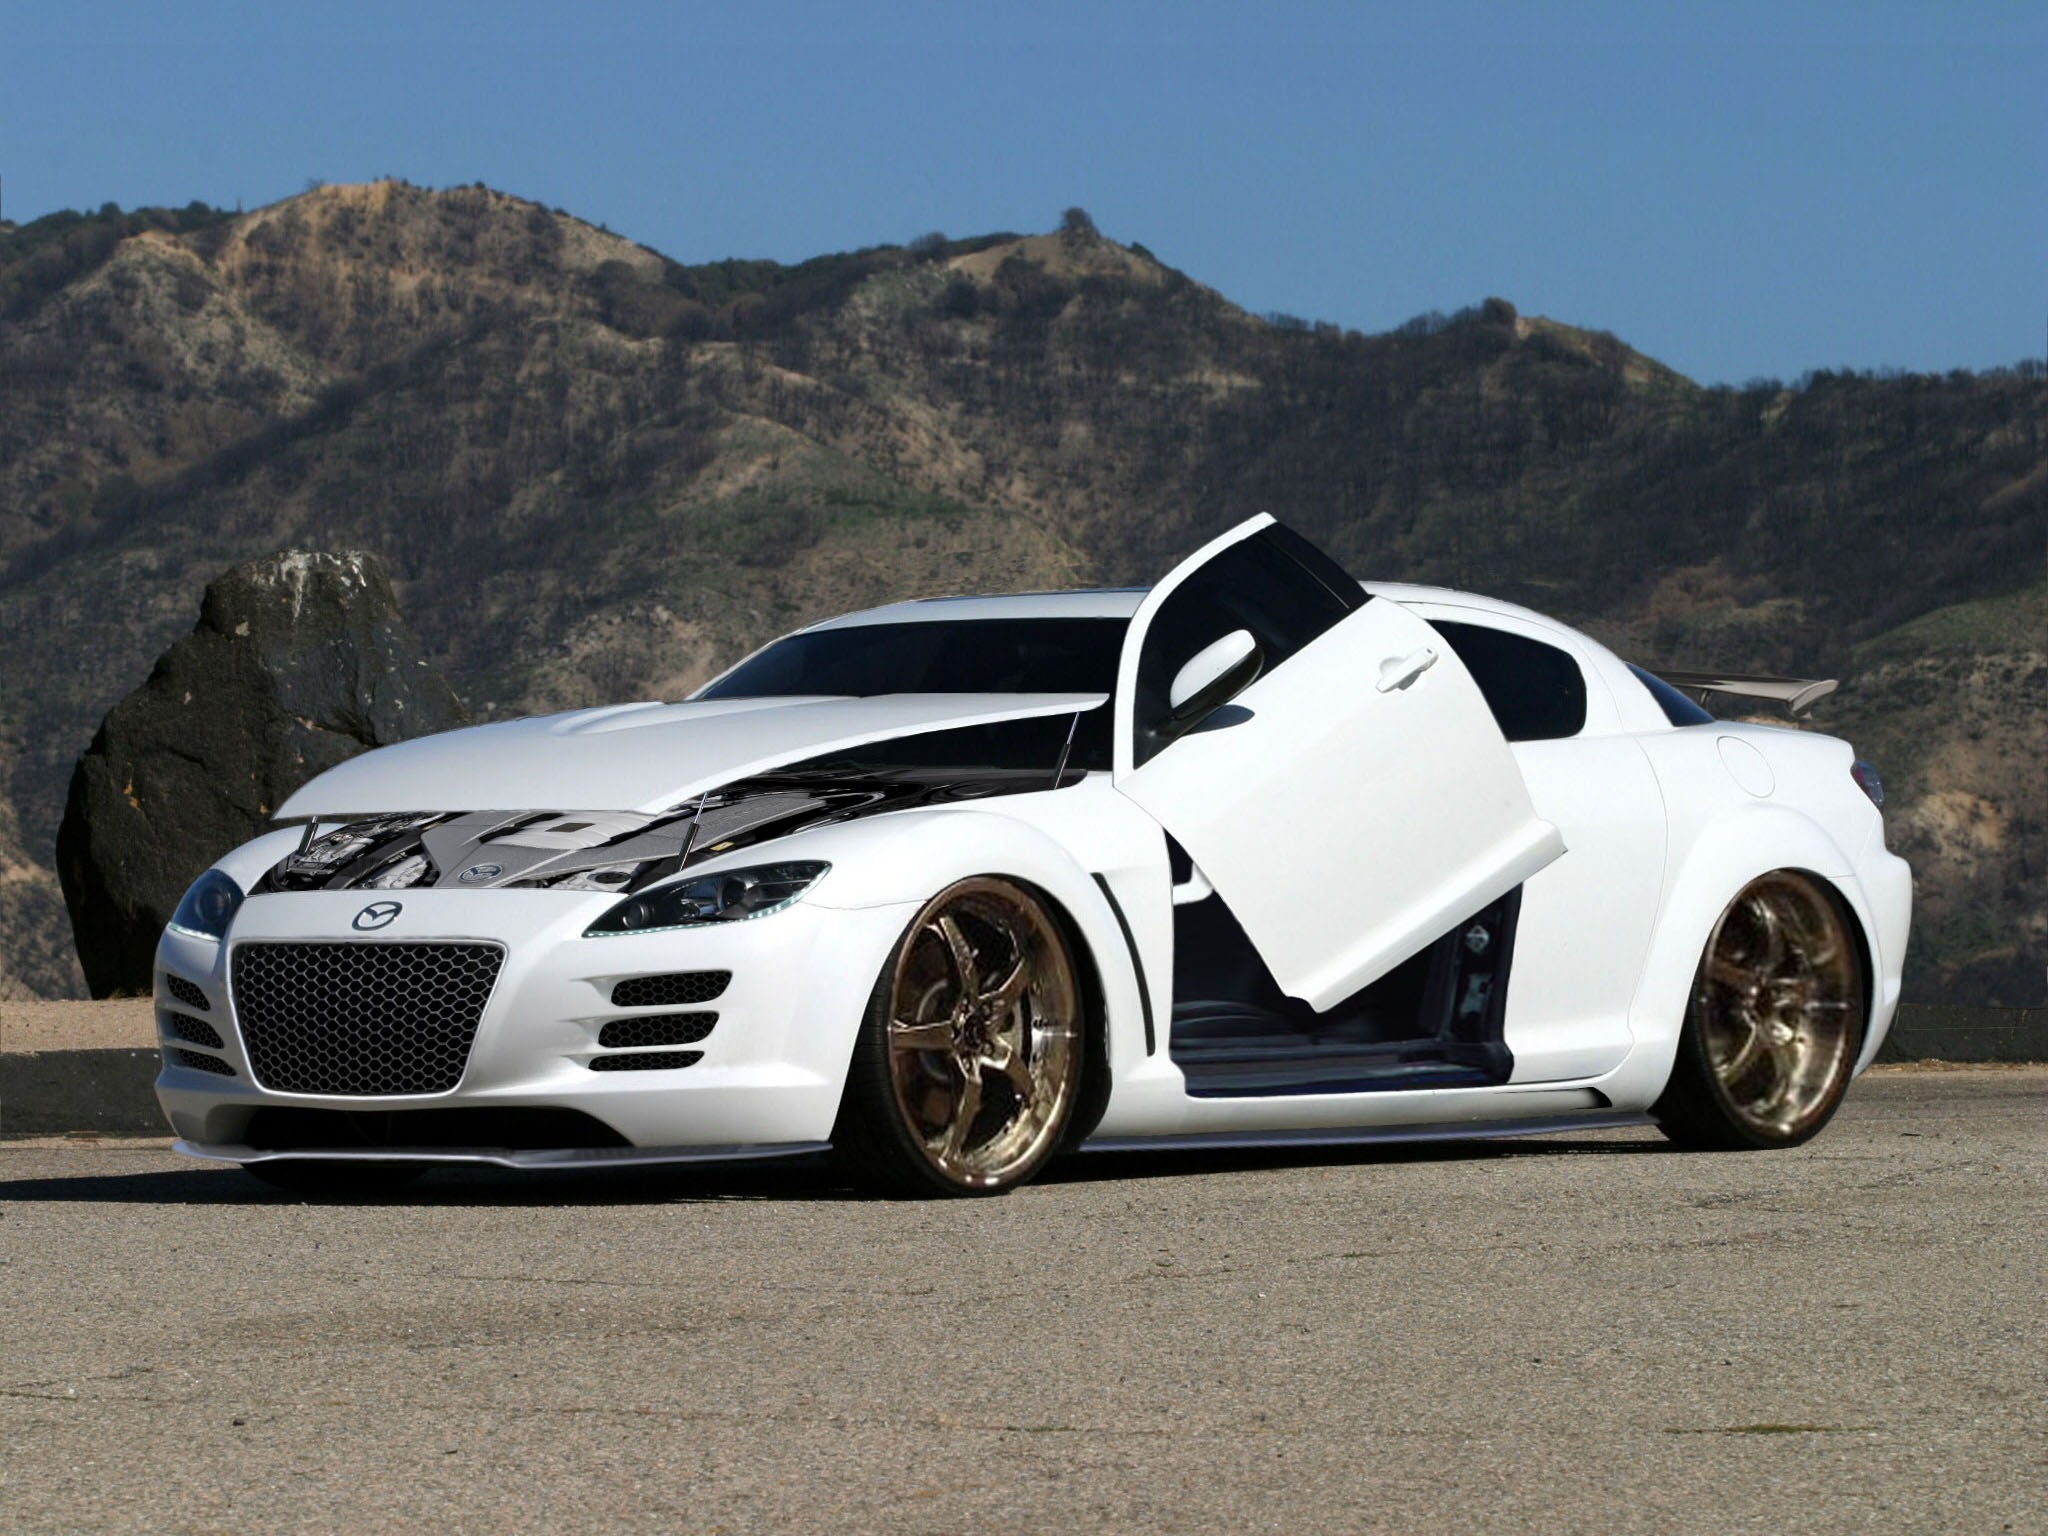 Mazda Rx8 Related Images Start 100 Weili Automotive Network